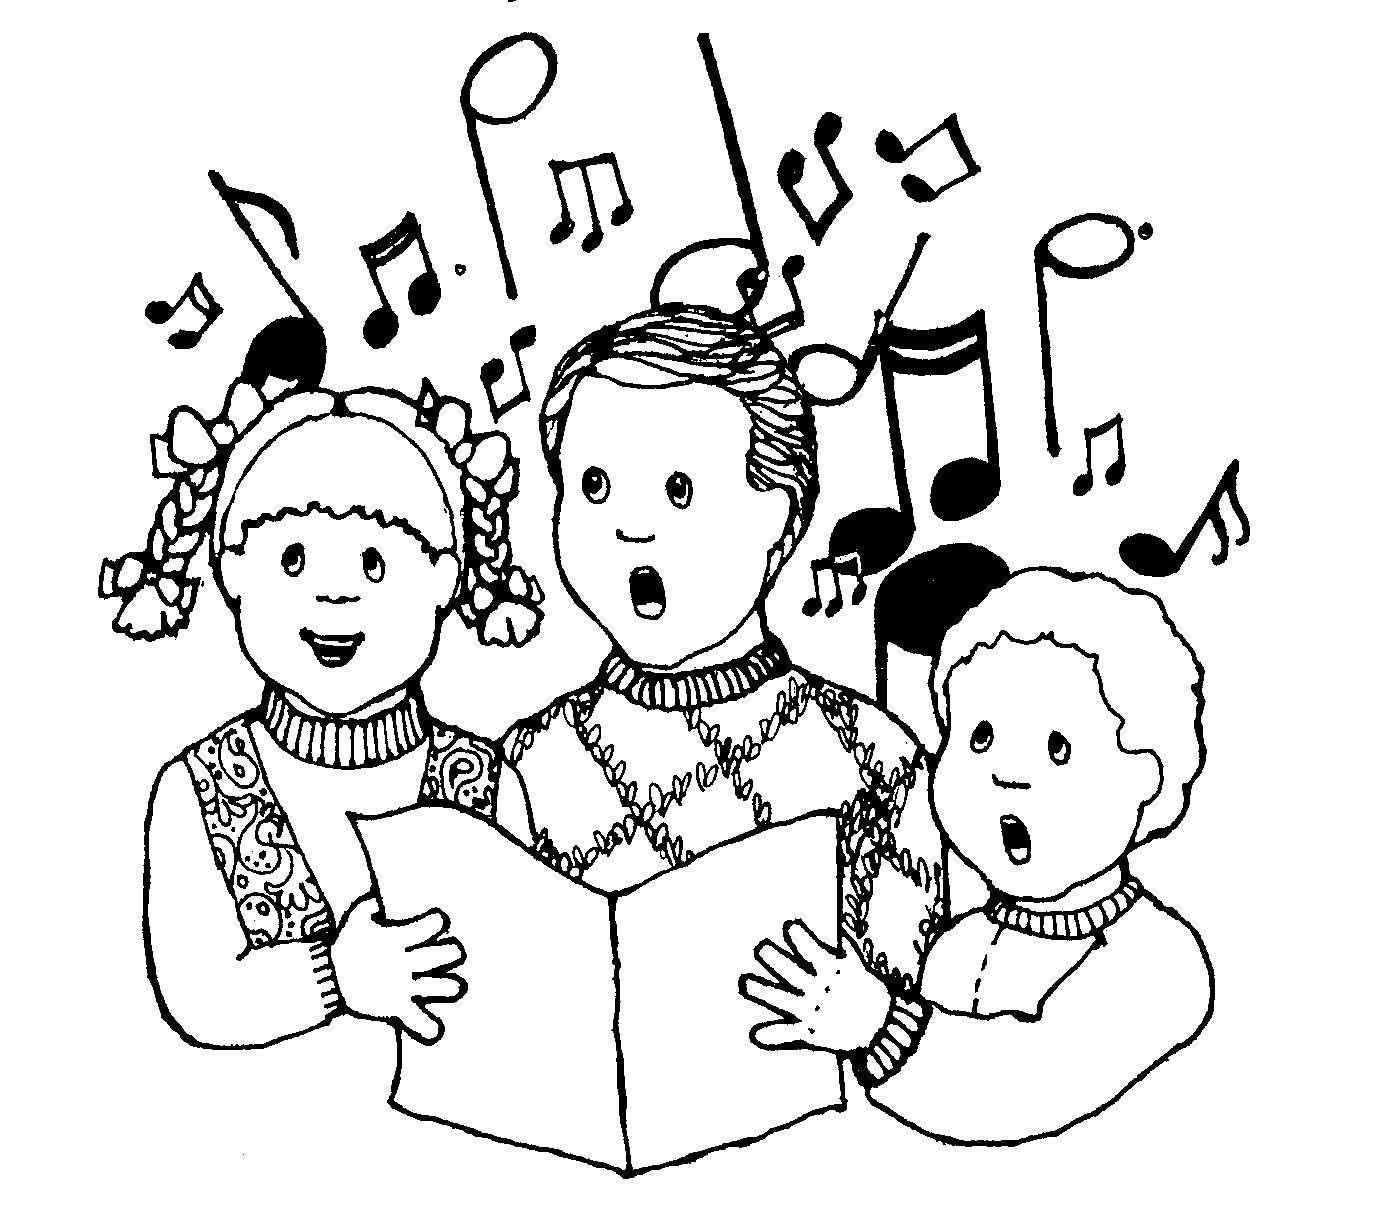 Lds clipart singing. Mormon share kids primary